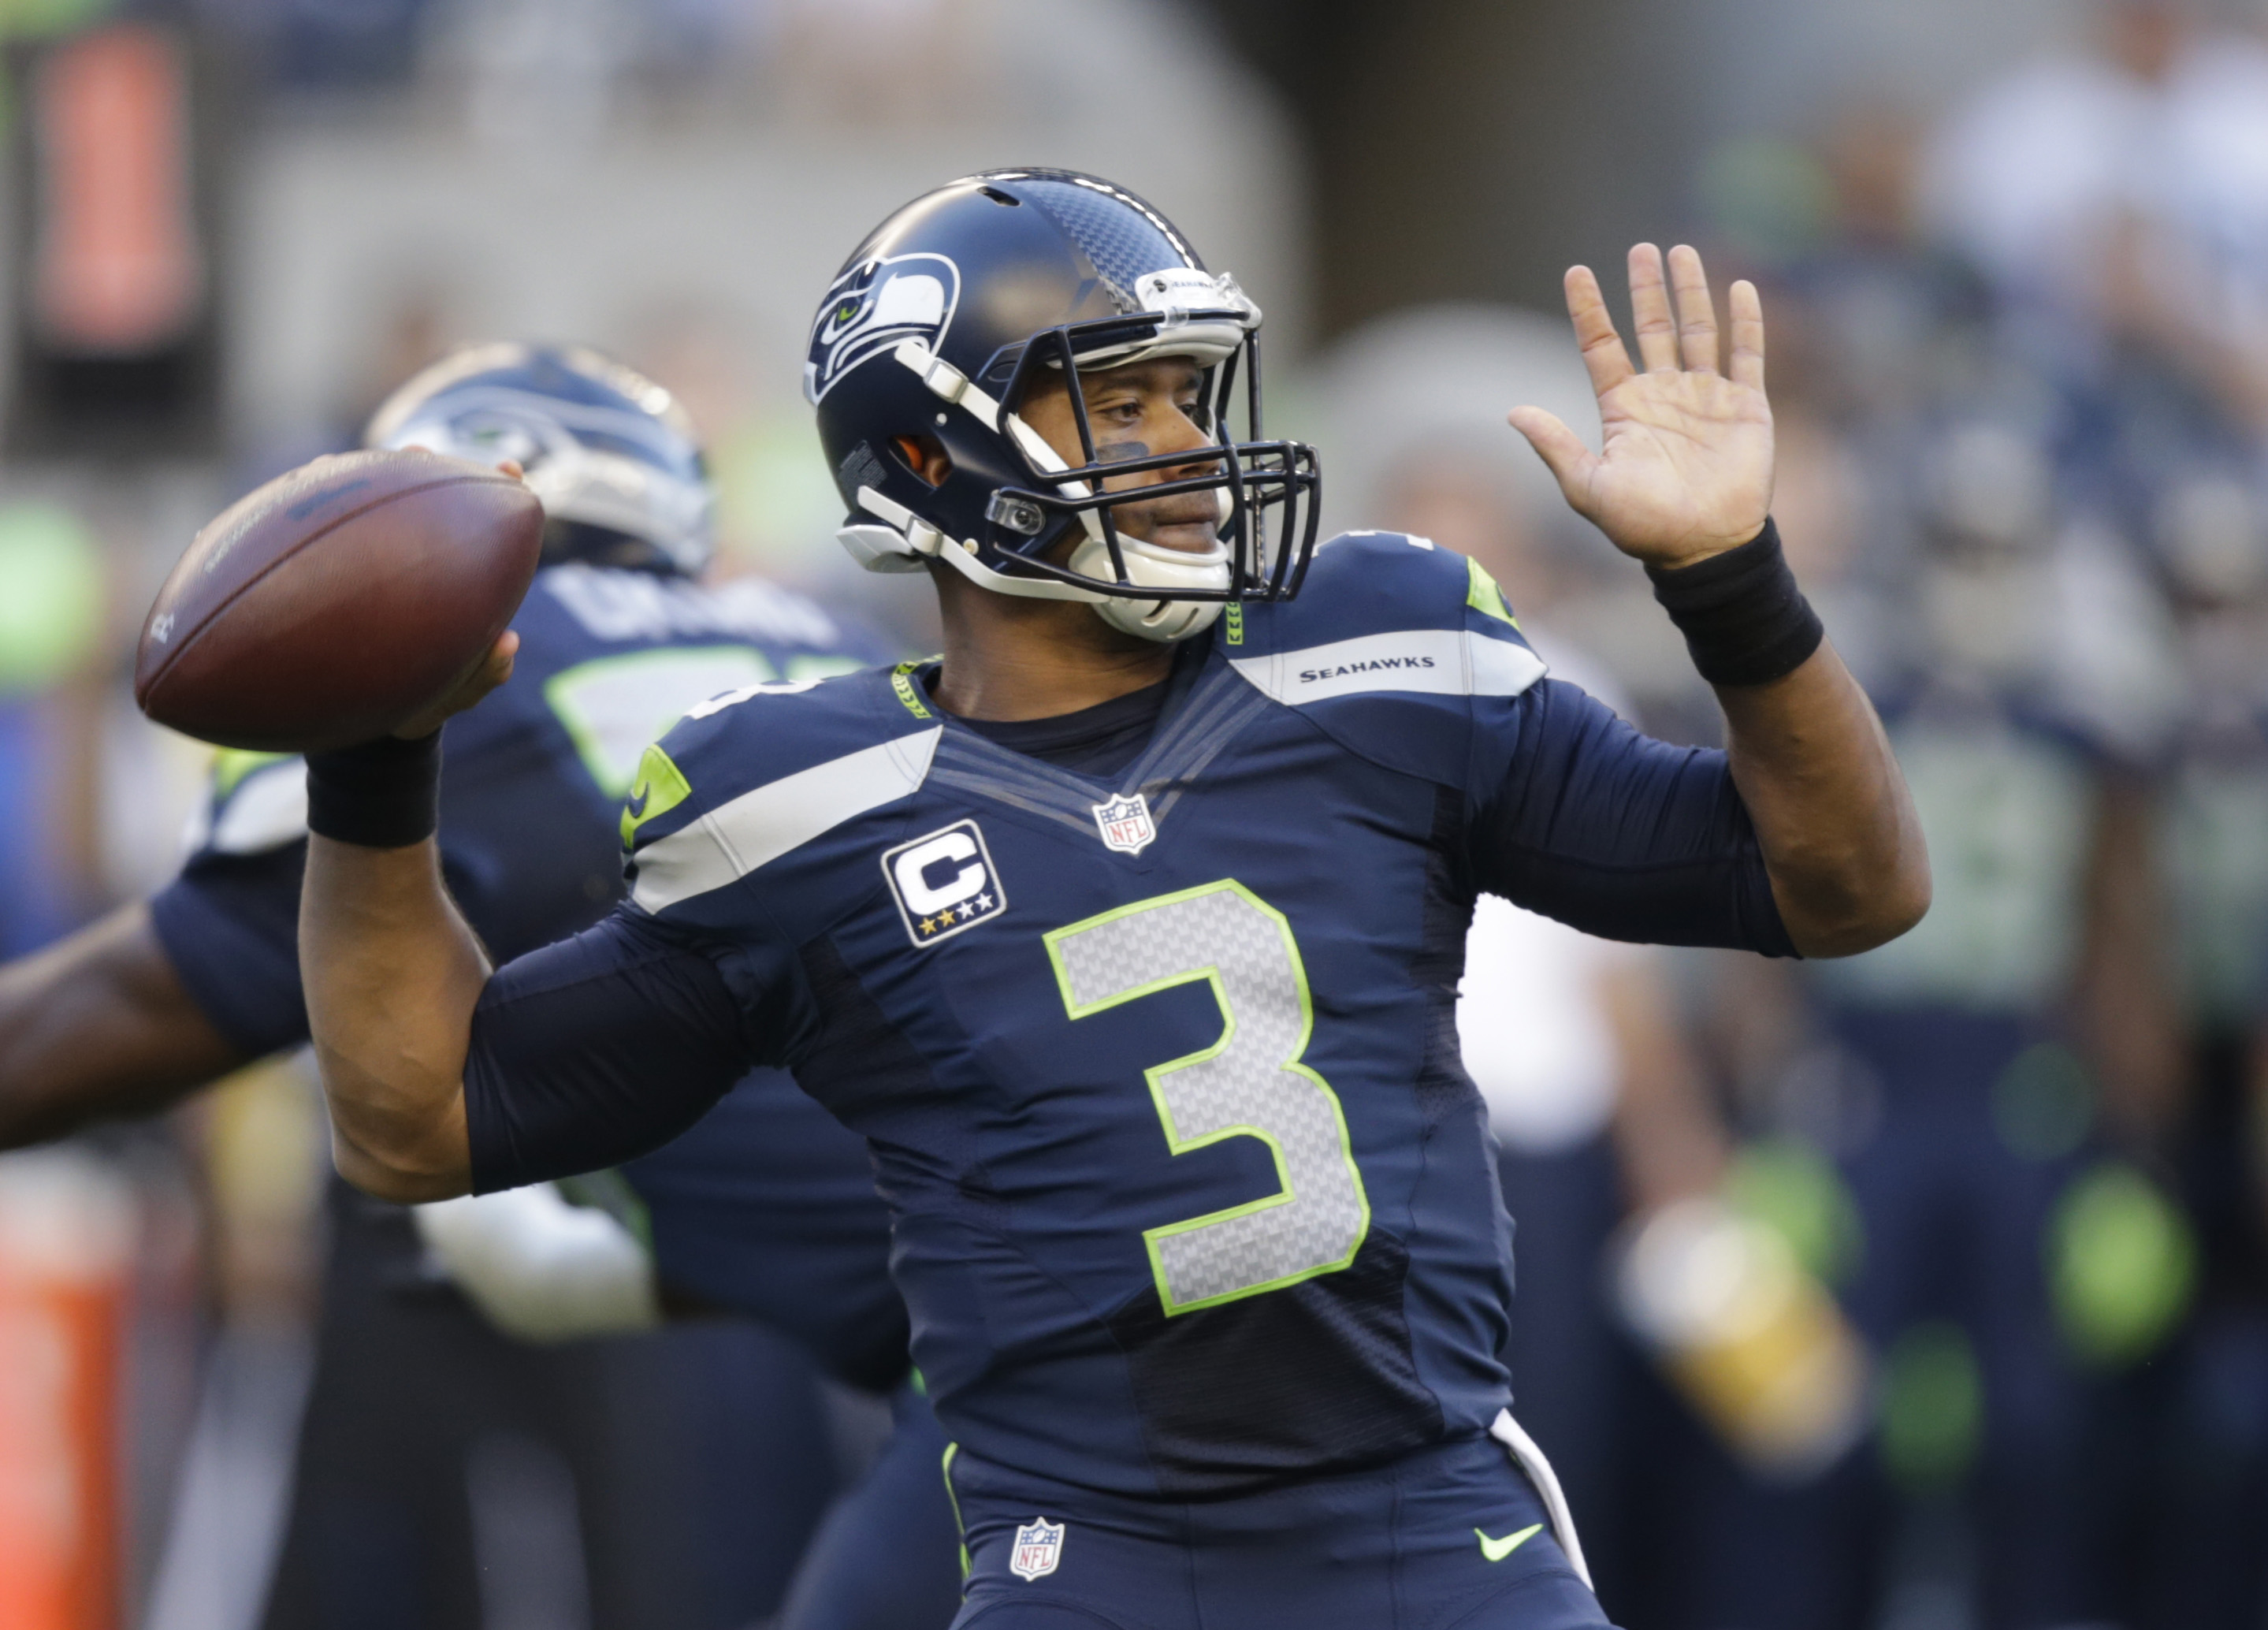 Seattle Seahawks quarterback Russell Wilson winds up to pass against the Green Bay Packers in the first half of an NFL football game, Thursday, Sept. 4, 2014, in Seattle